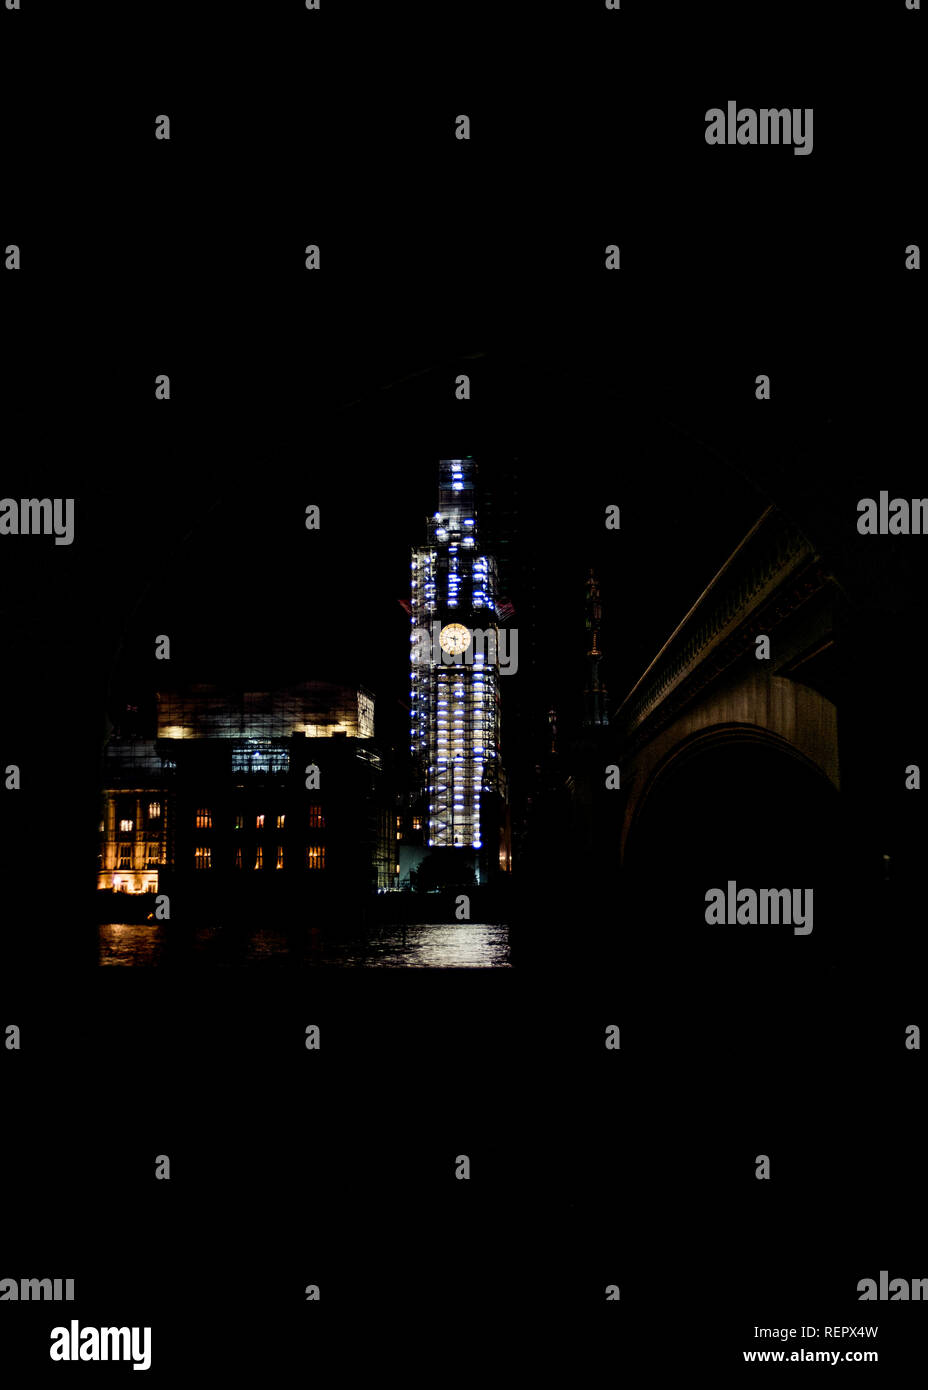 clock tower of houses of parliament Westminster, under scaffolding at night - Stock Image